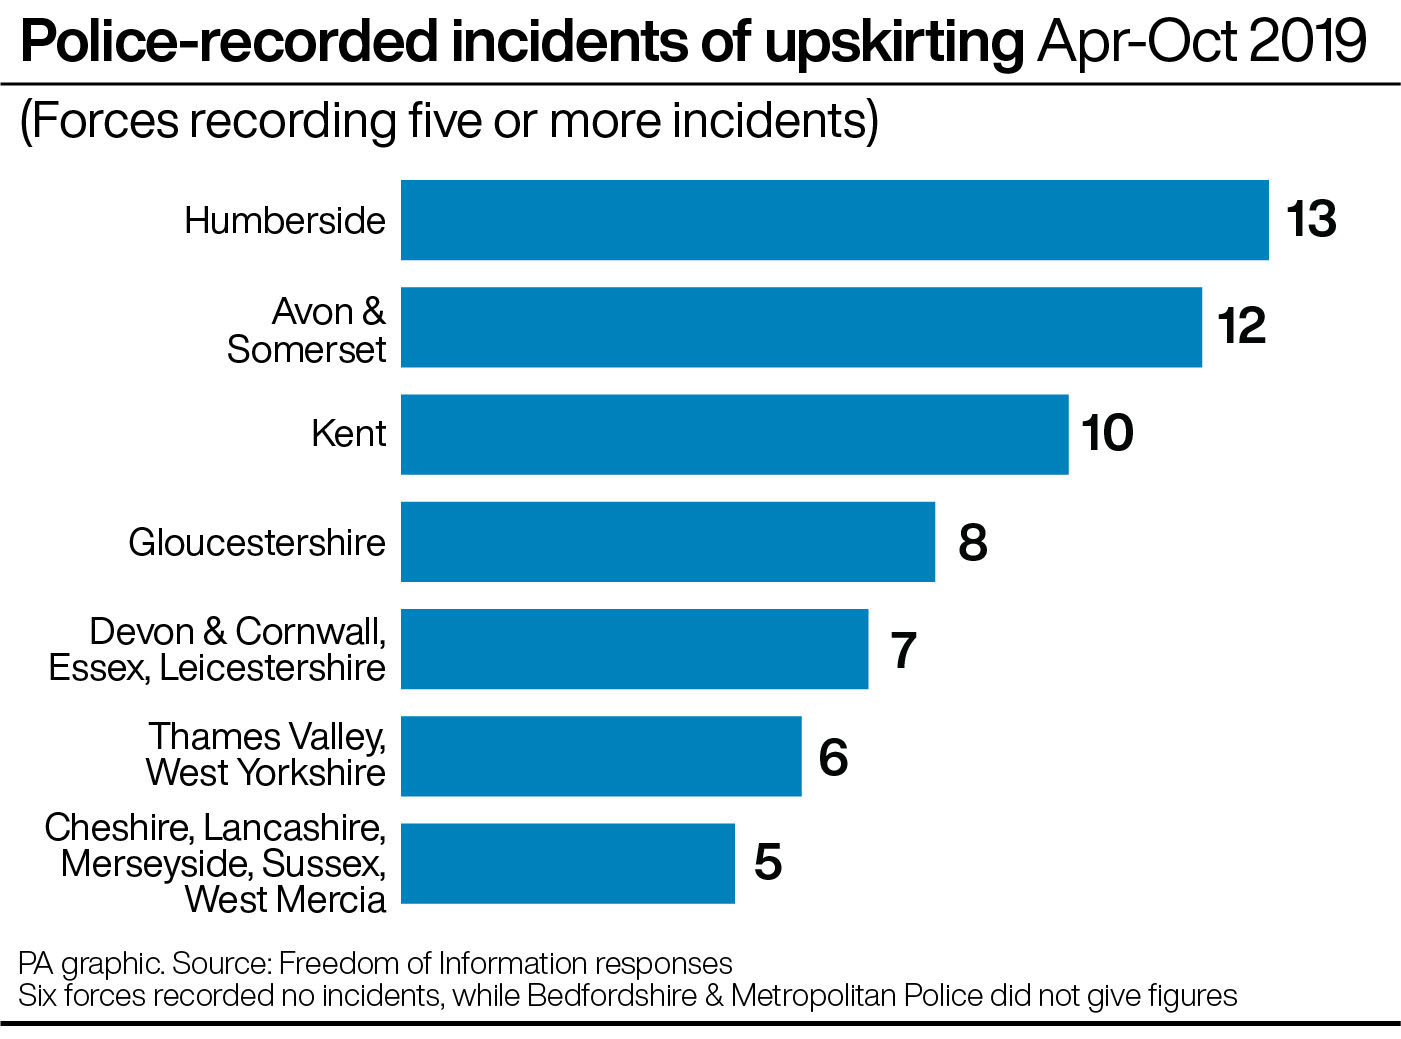 Police-recorded incidents of upskirting Apr-Oct 2019